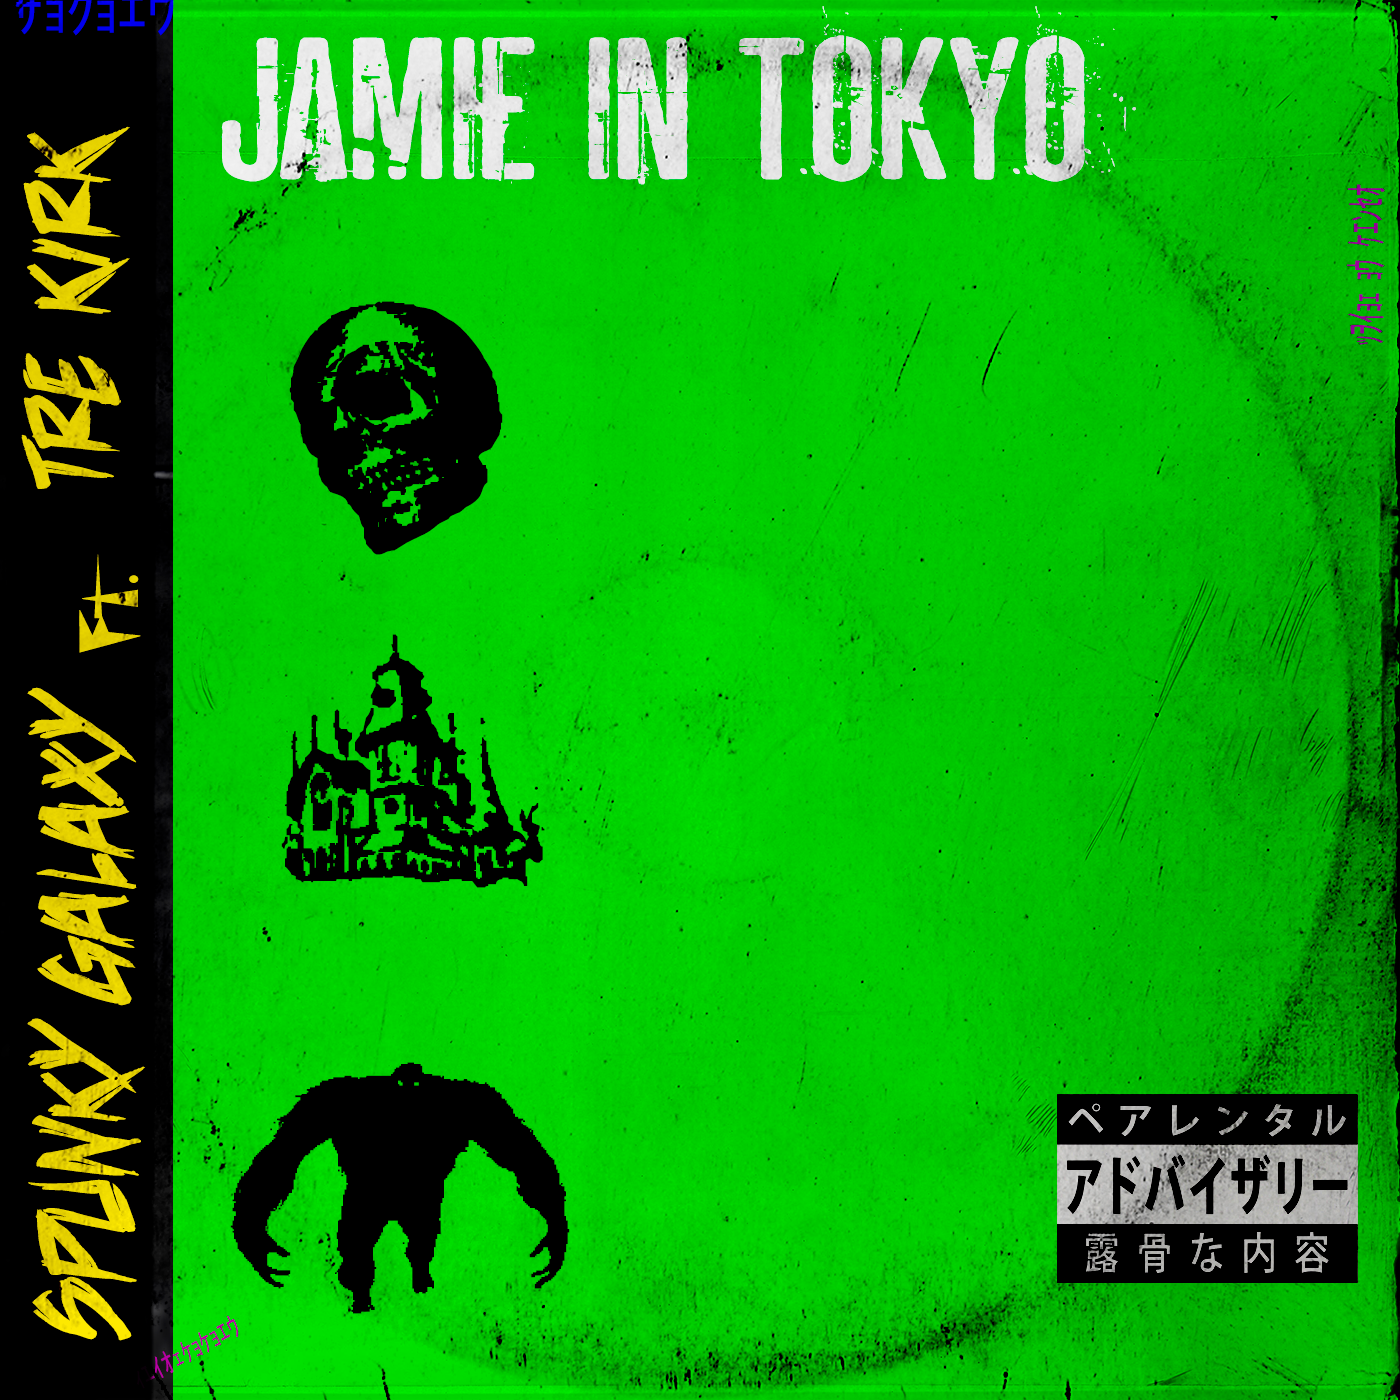 spunky galaxy Spunky Galaxy Ready To Drop Two New Joints Today Jamie In Tokyo